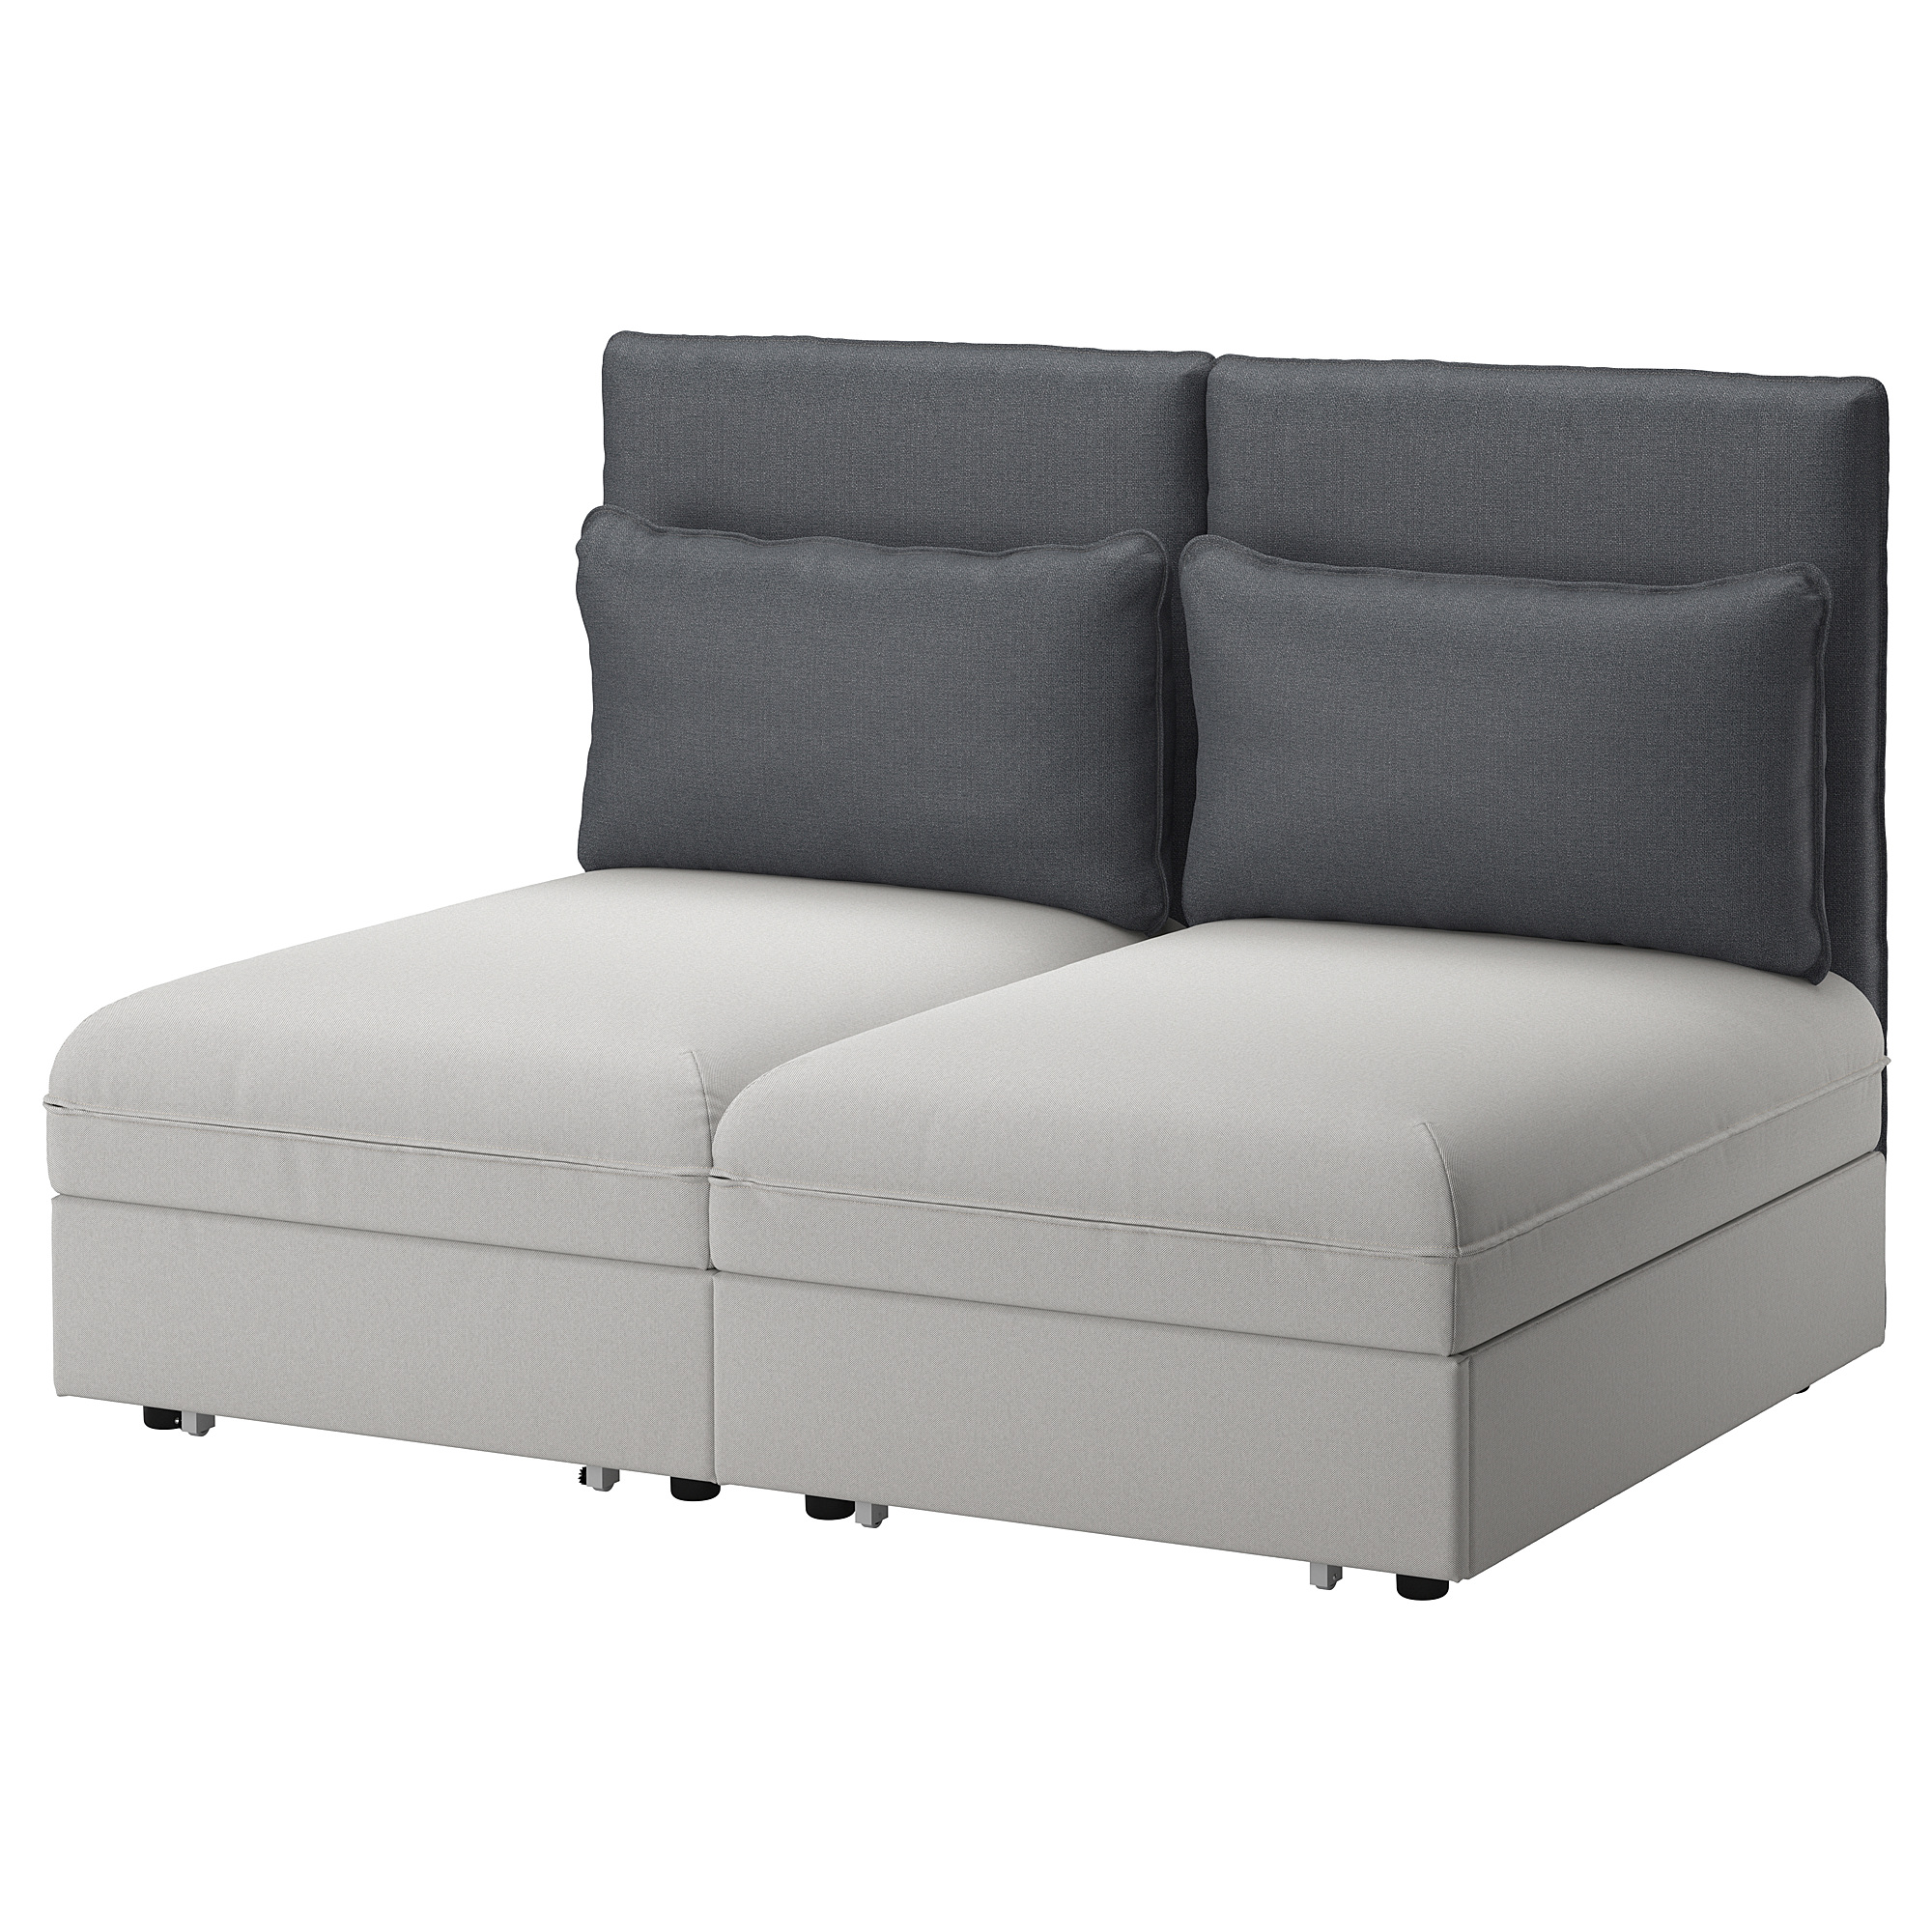 sleeper sofa murum year the in en collection terms gb read seat vallentuna beige chair about guarantee ikea collections